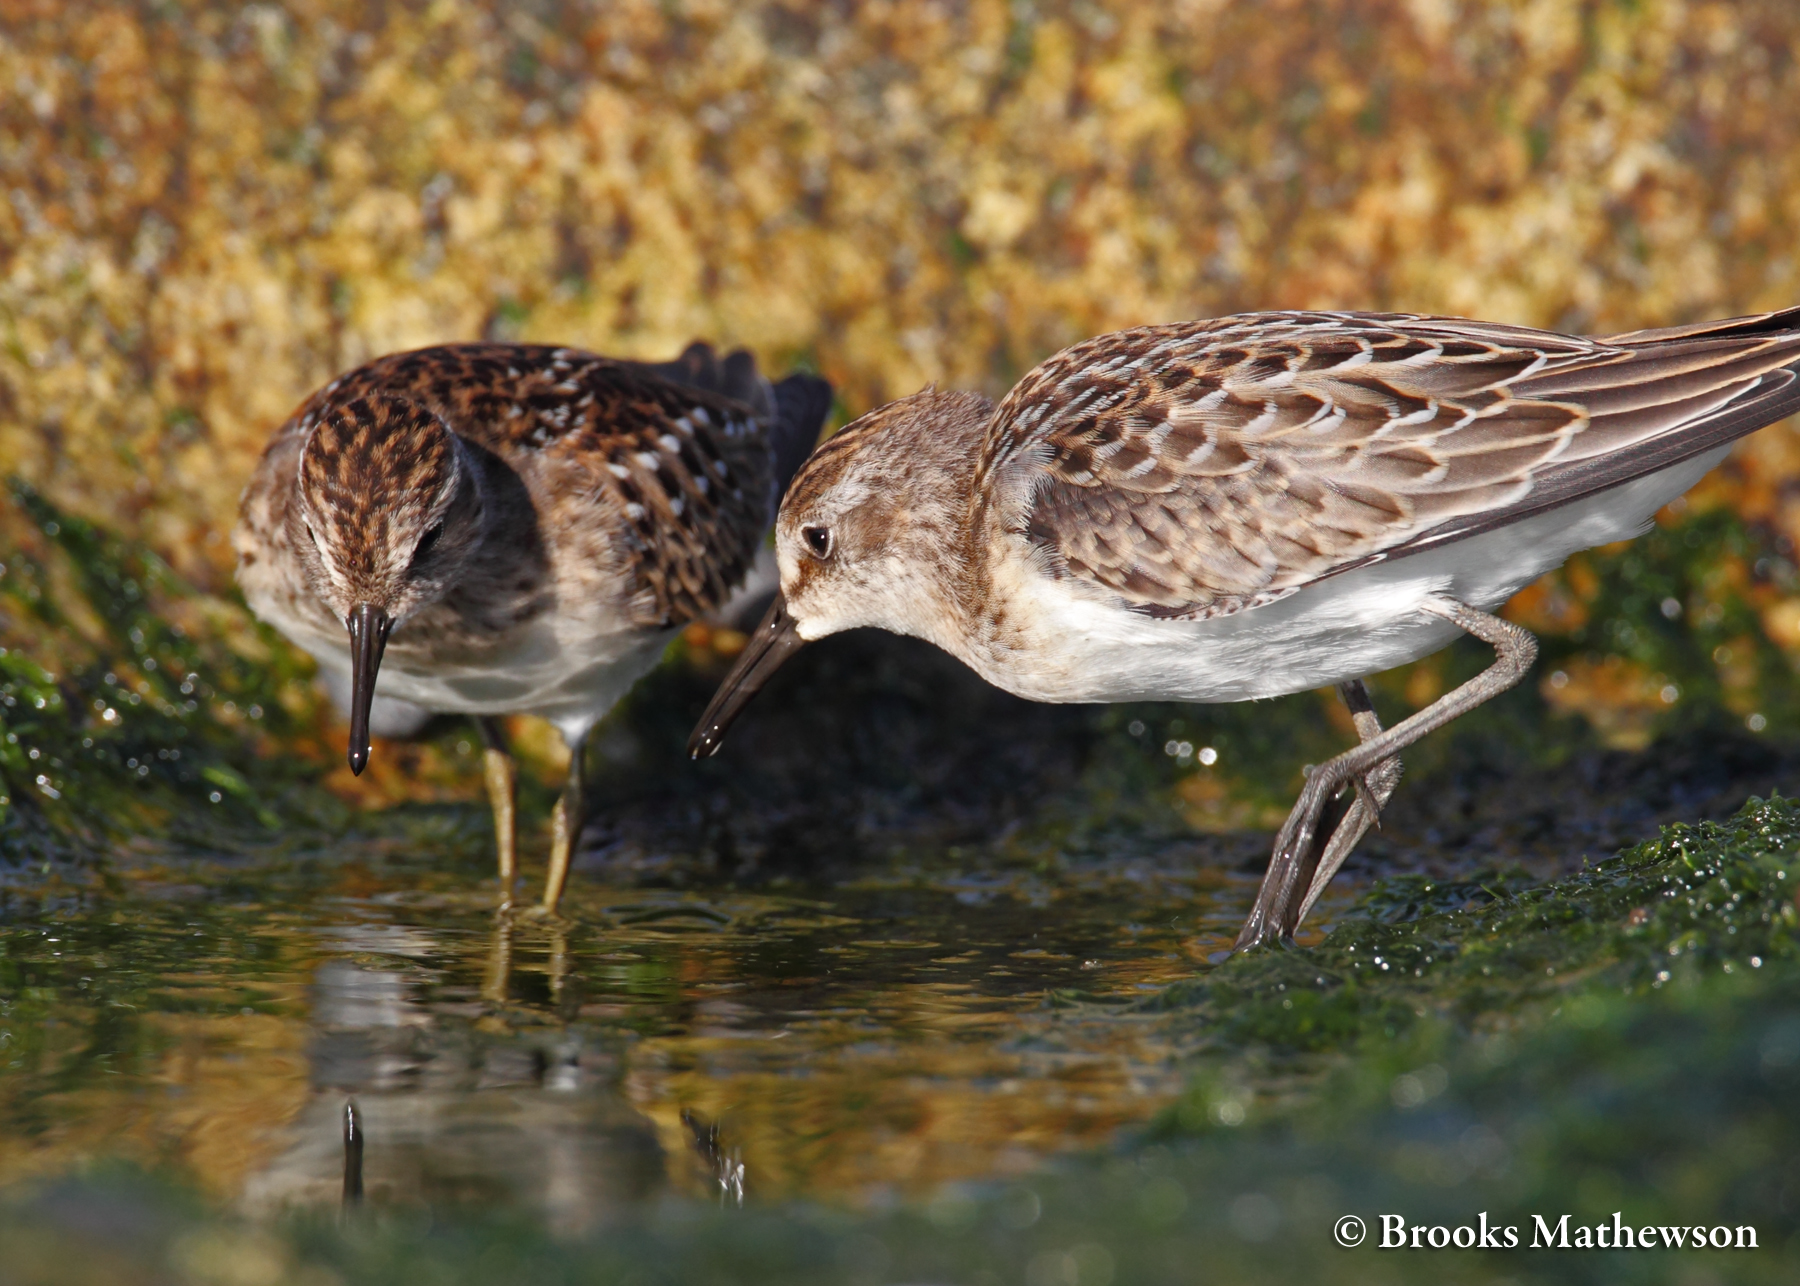 A Least and Semipalmated Sandpiper find a way to get along in the same tidal pool despite their differences in leg color.